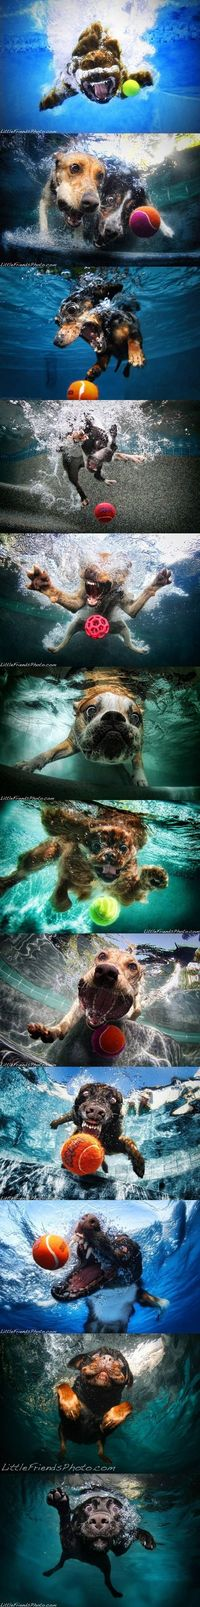 Doggies under water :)